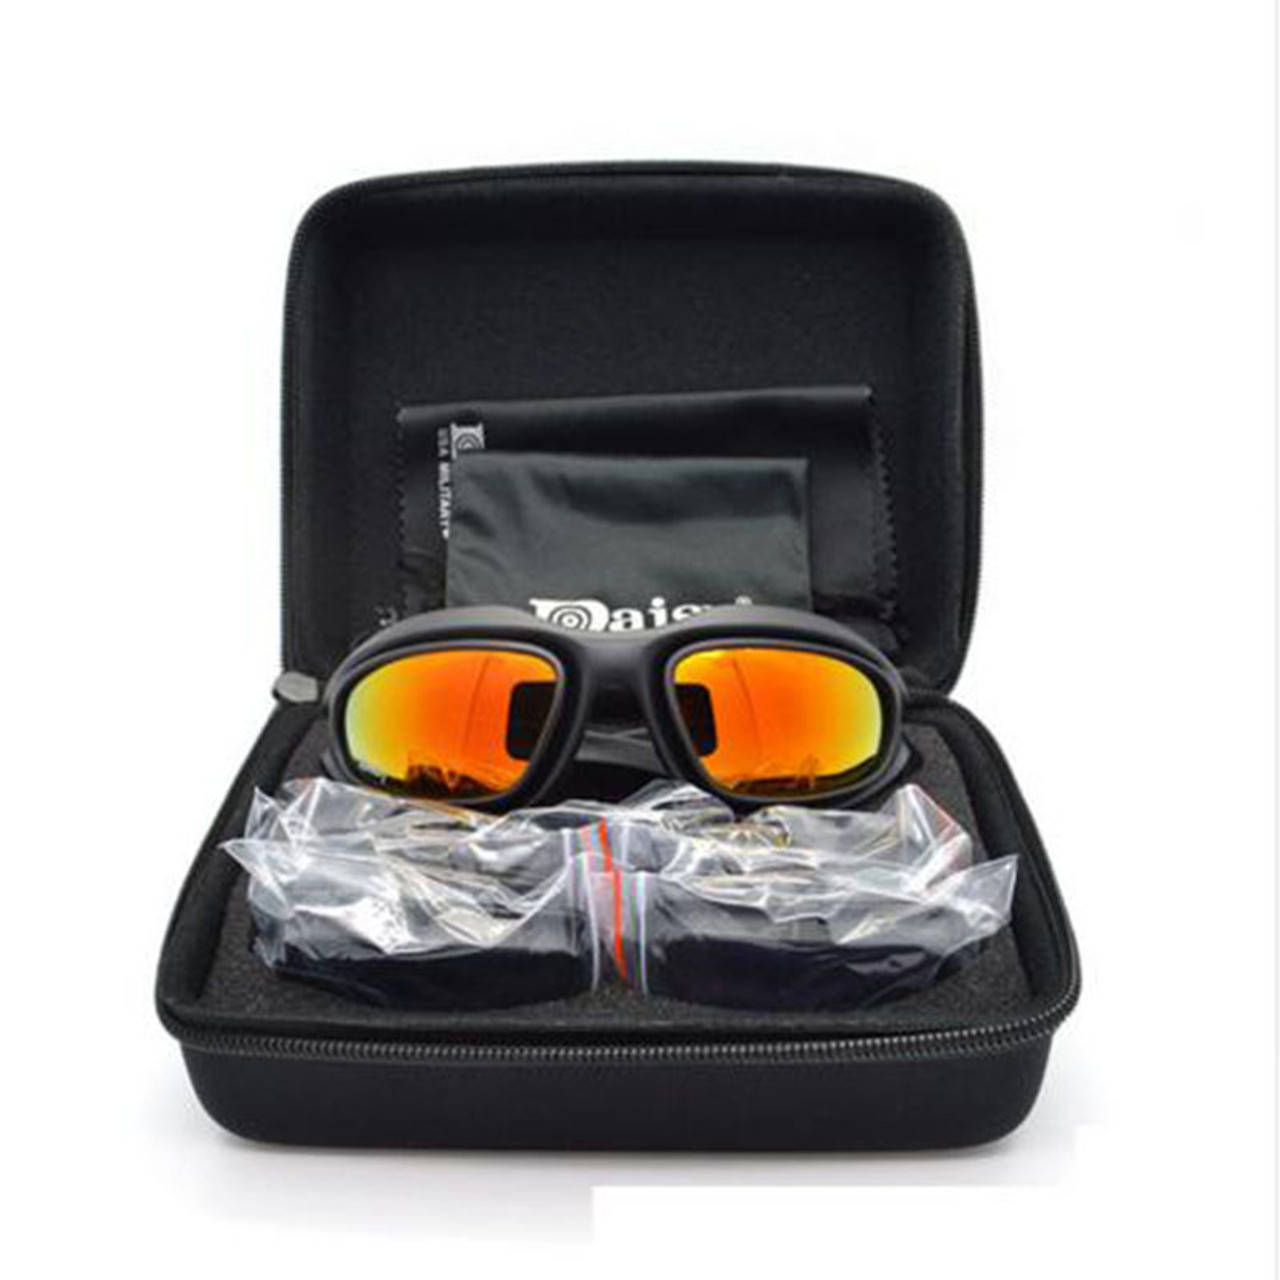 5e5b4acfce2d daisy c5 colour coating of high quality hd UV400 sunglasses Men s men in military  tactical warfare ...